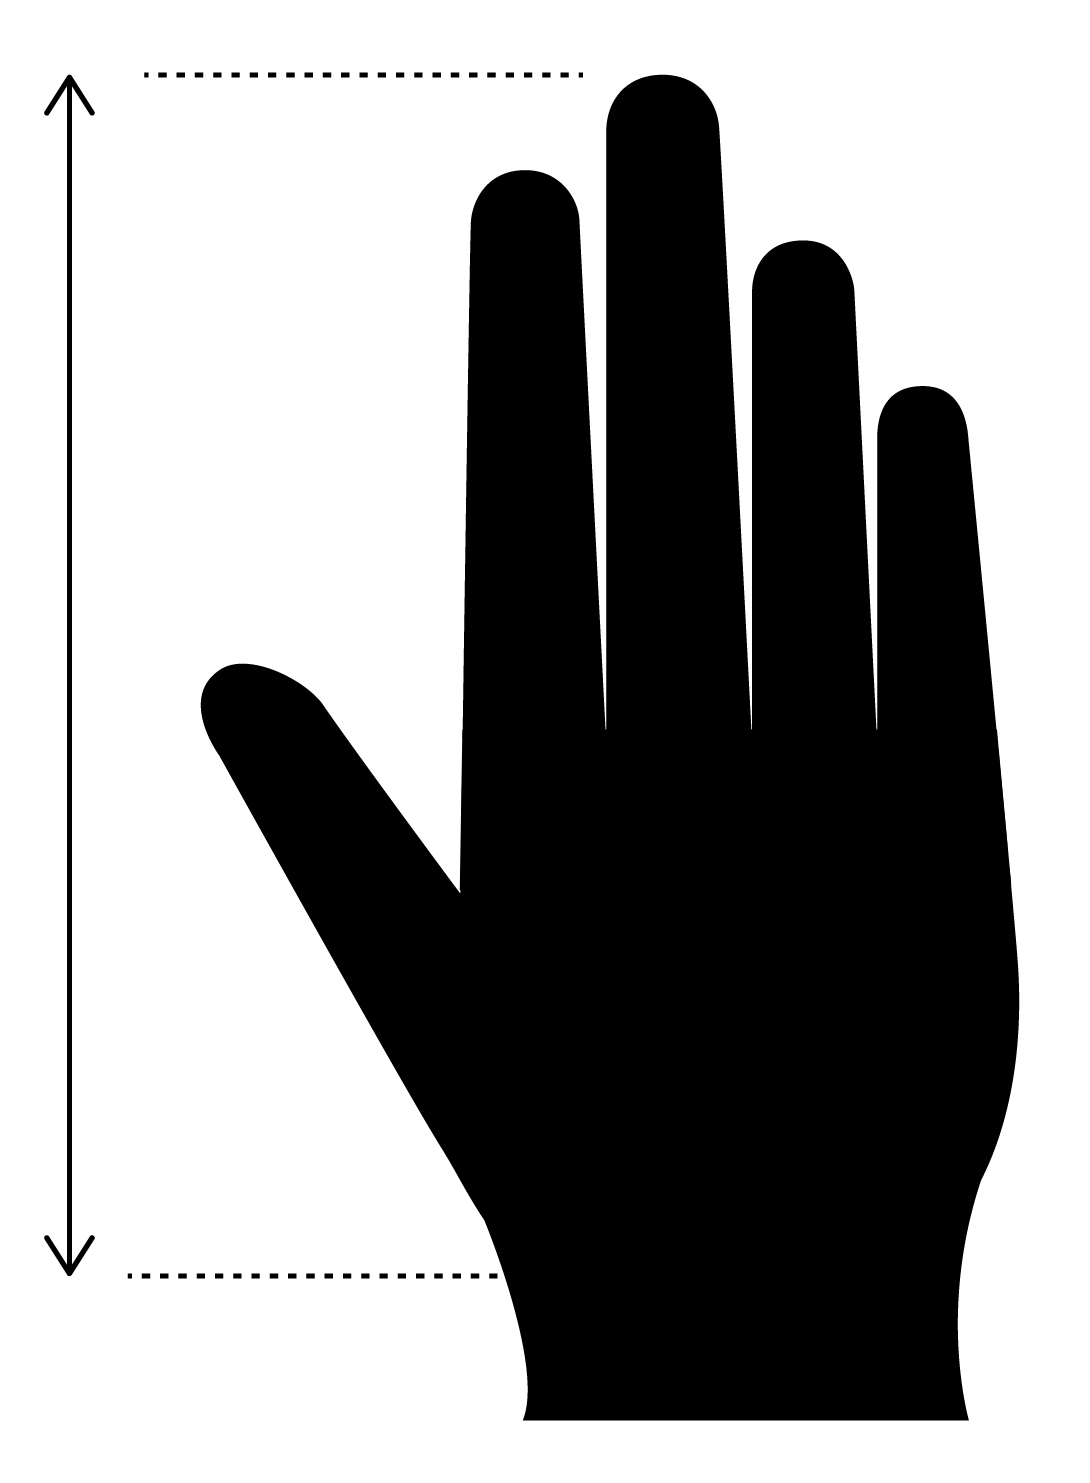 Measure from top of middle finger to base of hand